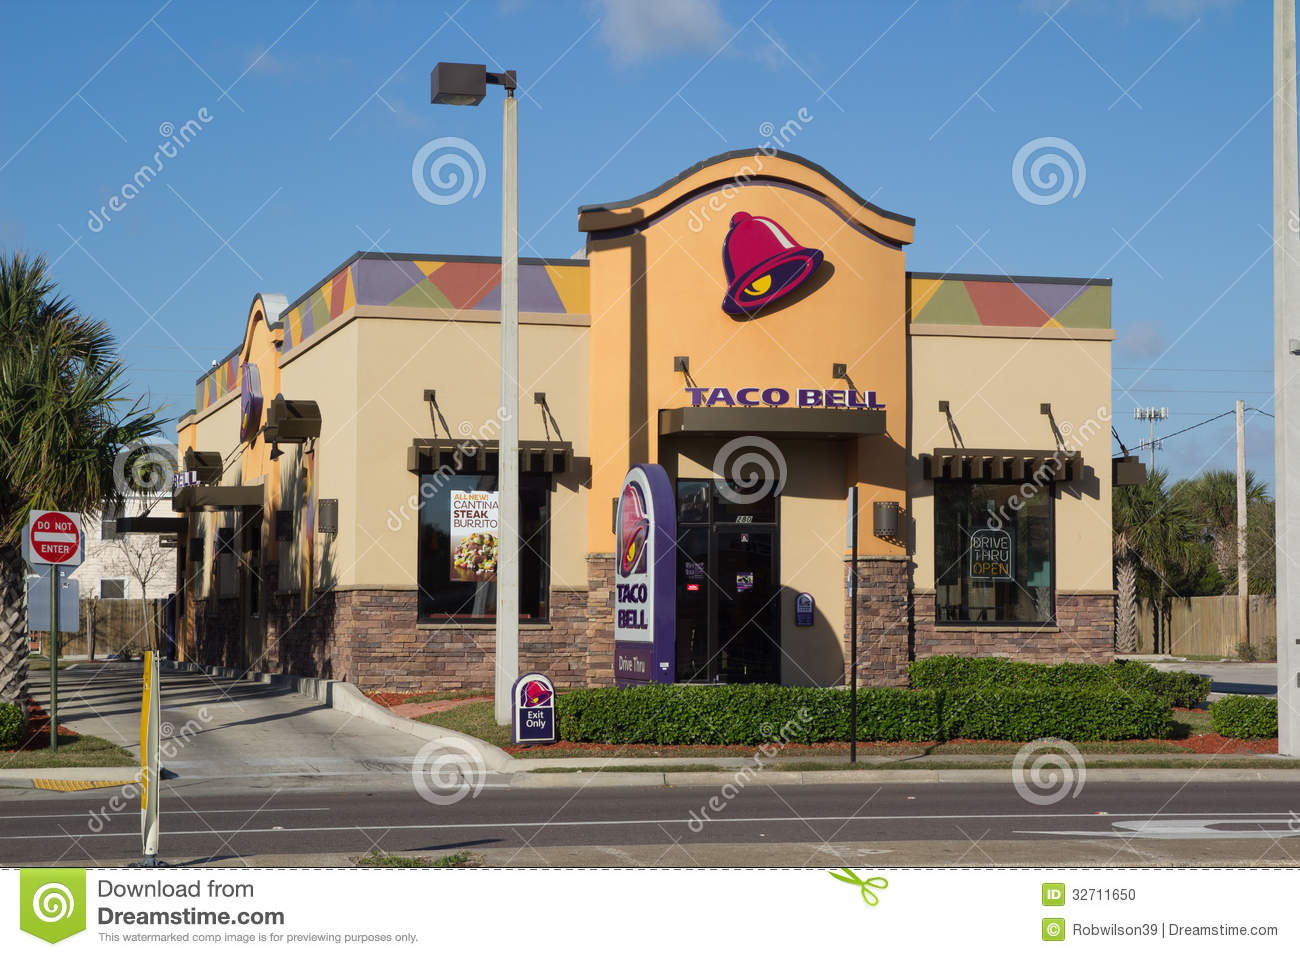 Taco bell editorial image